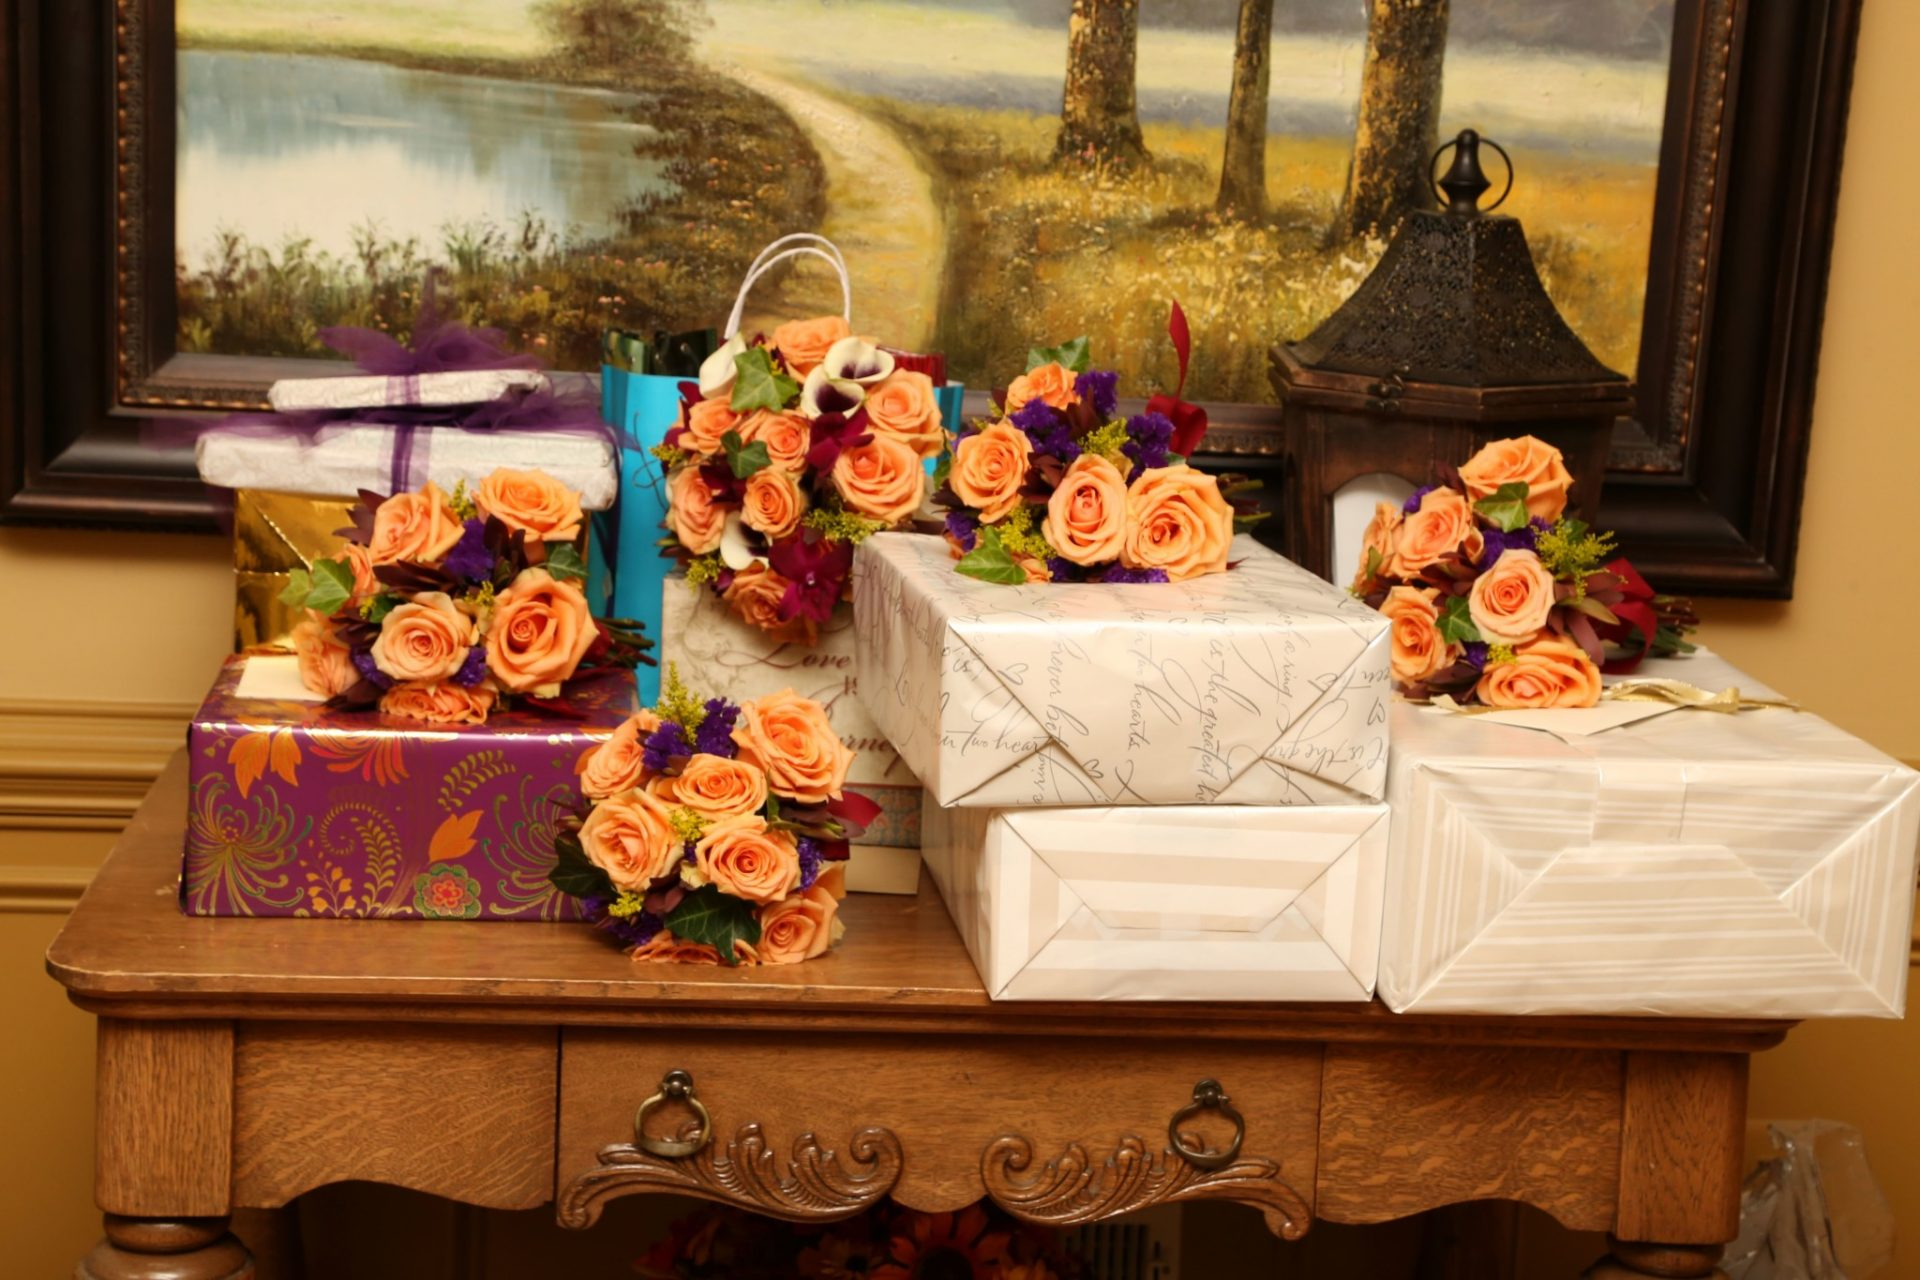 Wedding gifts are placed on table by entrance to Morningside Inn